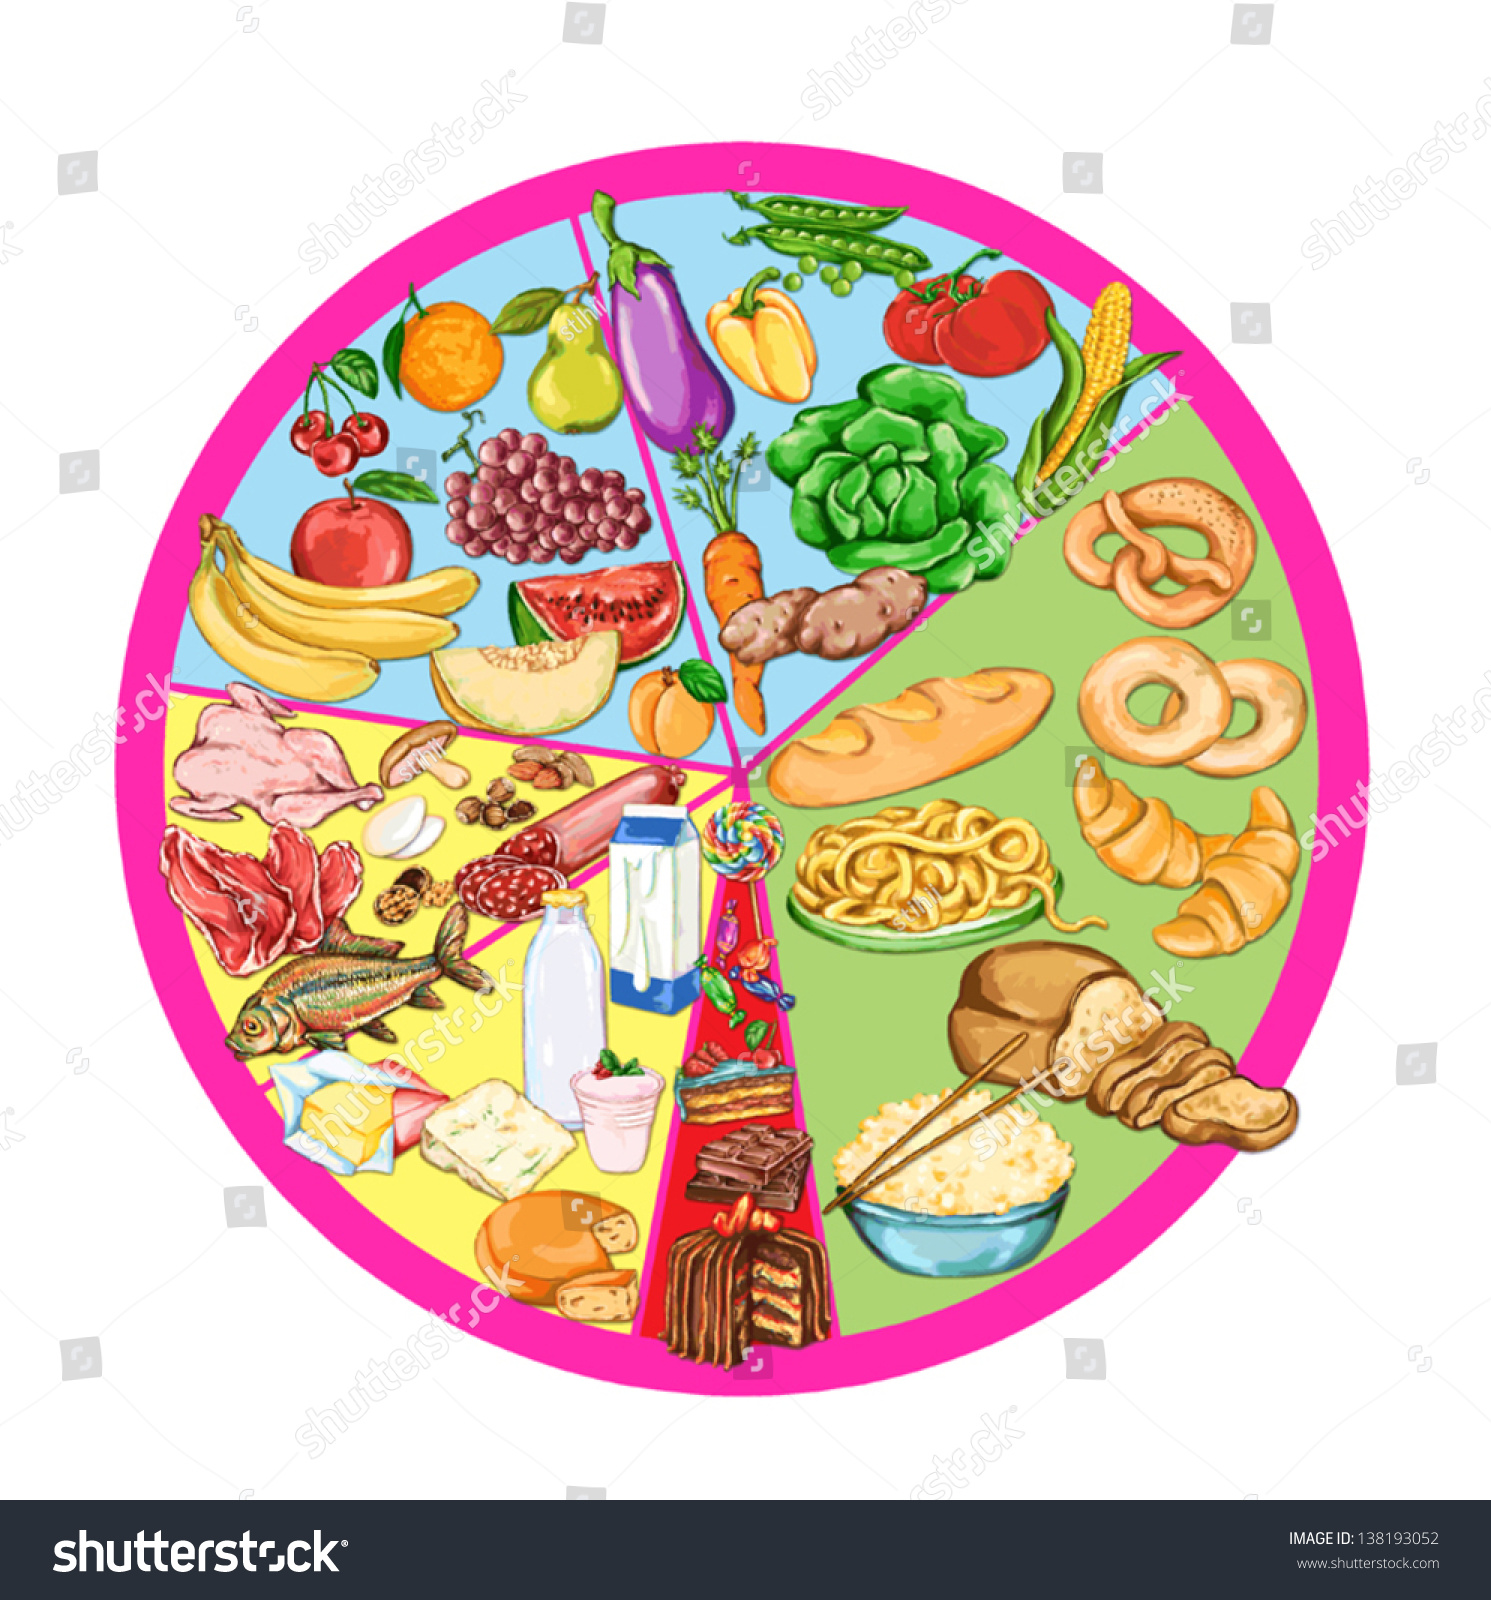 Drawing Food Plate Food Scales Food Stock Photo (Photo, Vector ... for Plate With Food Drawing  165jwn